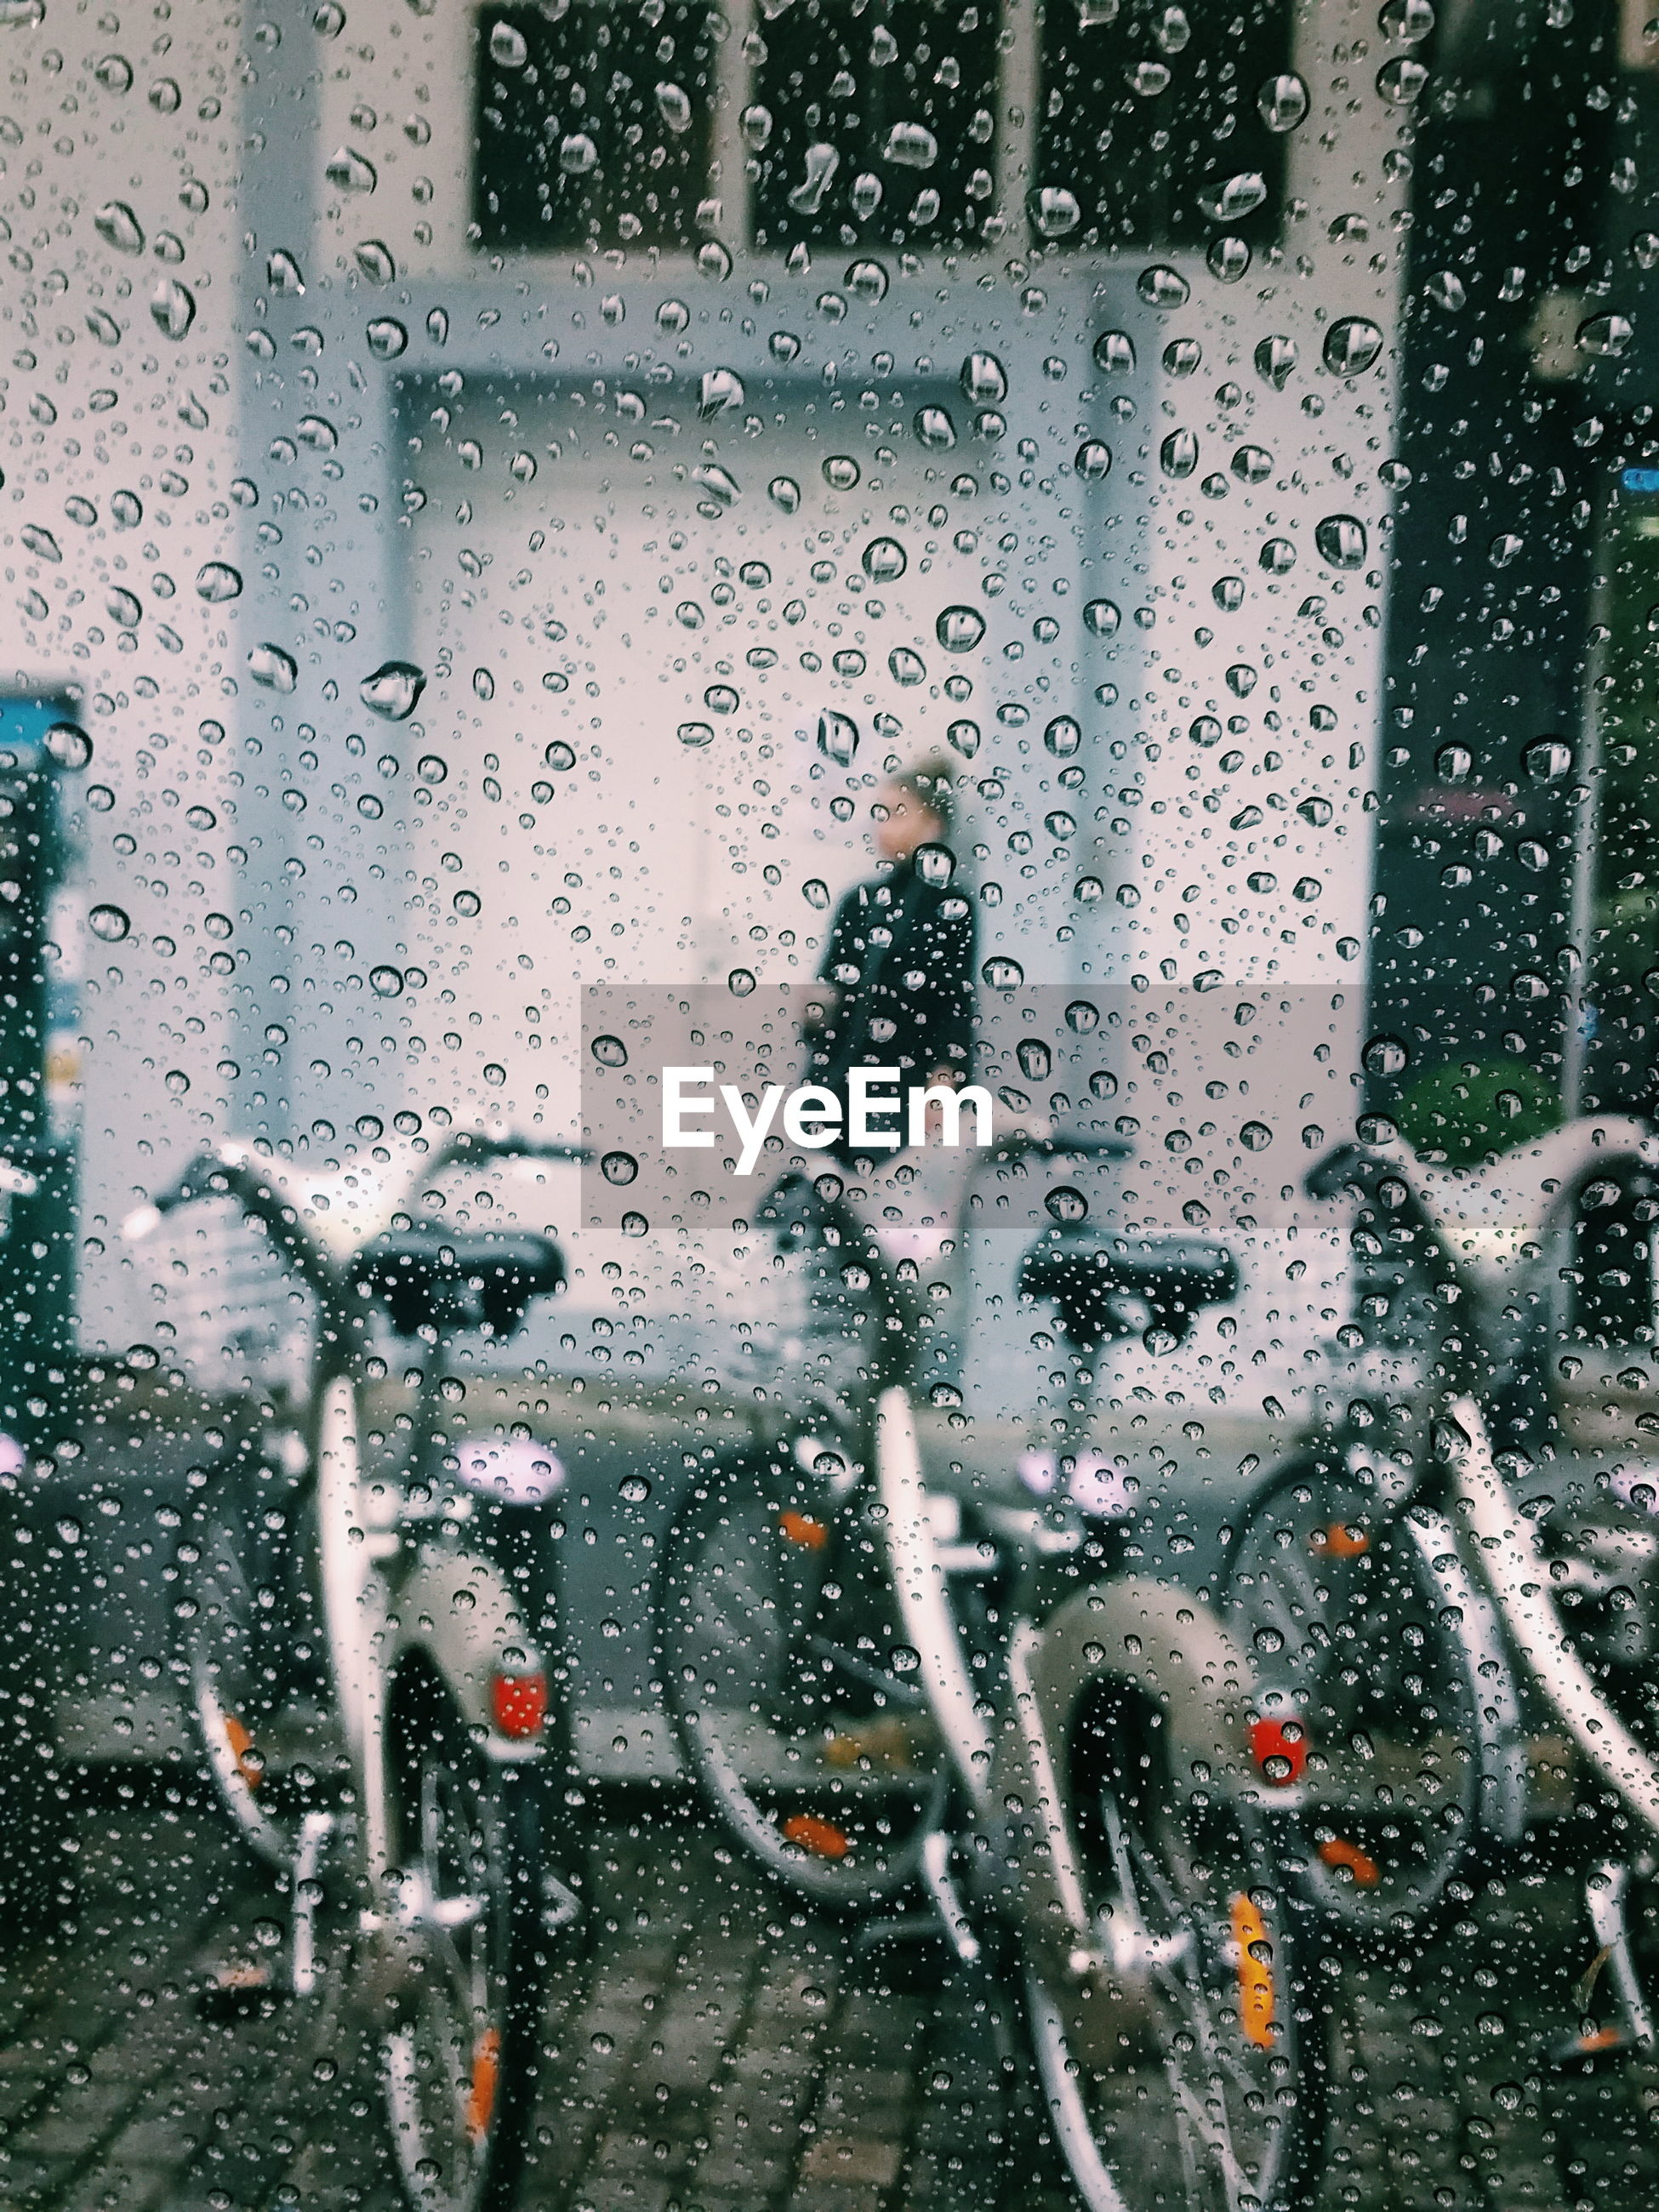 Water on glass with bicycle in background